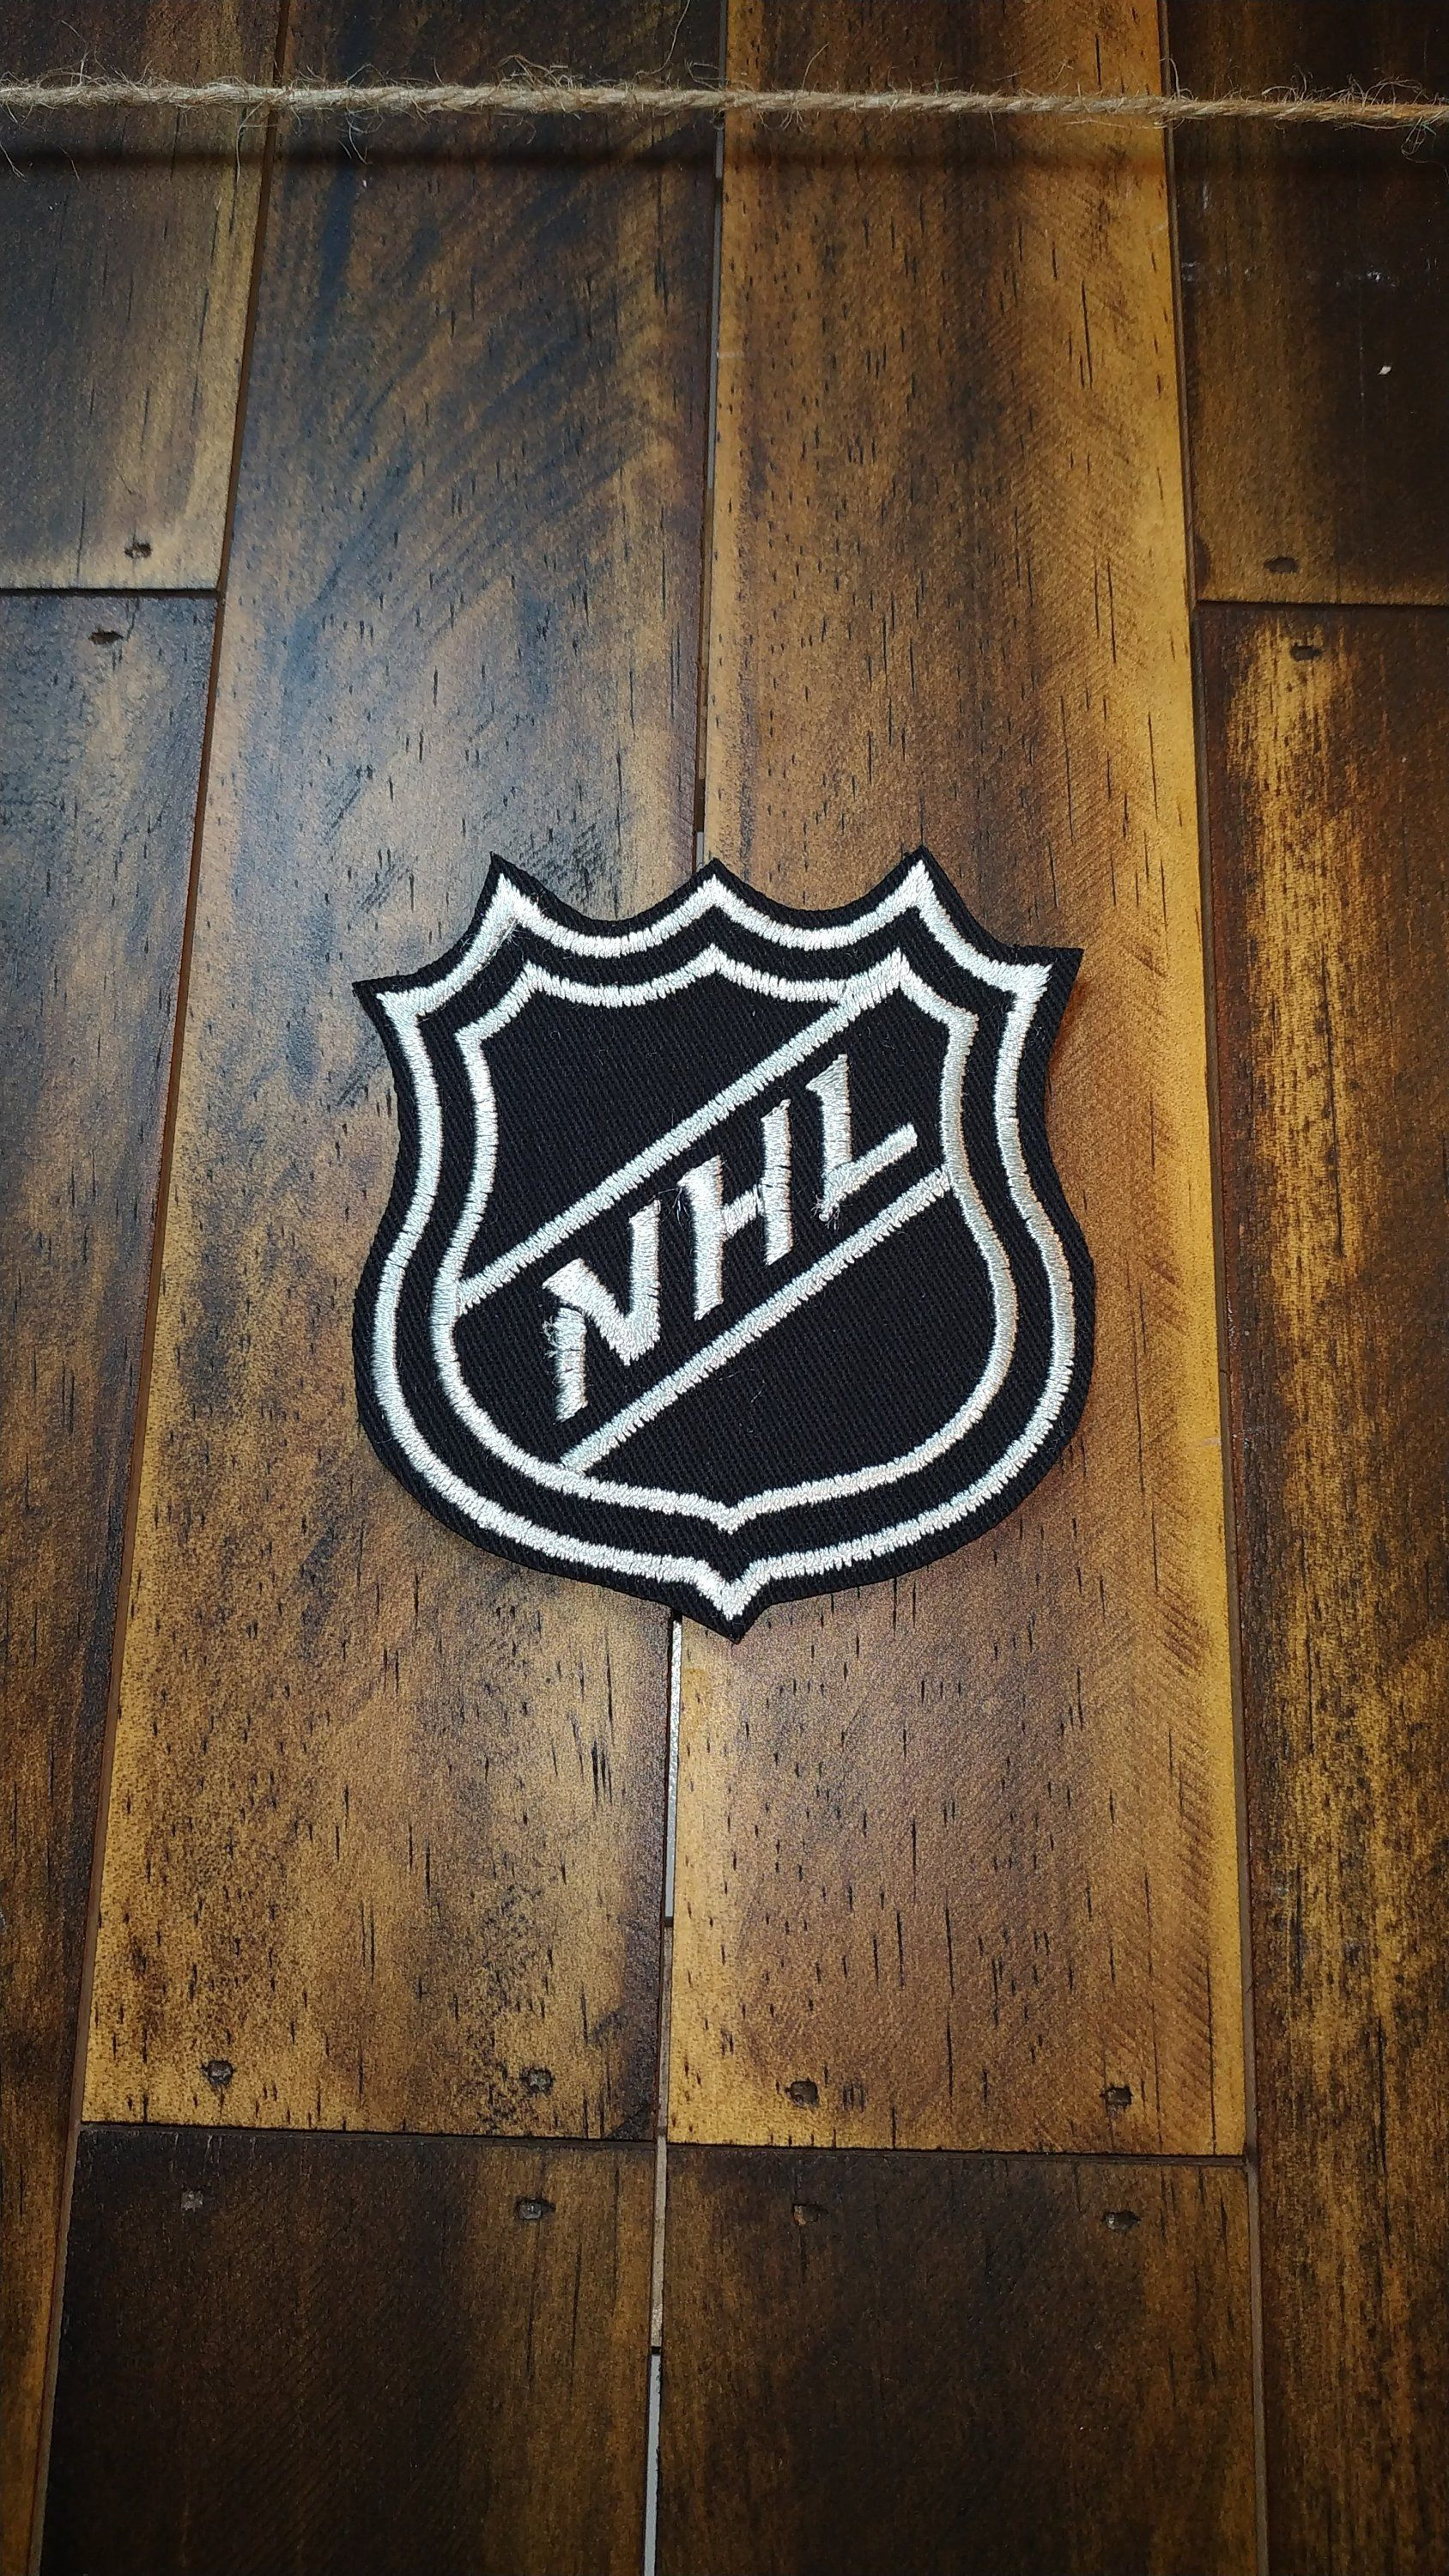 Patch Iron-On or Sew-On/NHL Logo/NATIONAL HOCKEY League/Embroidered Applique/Patches For Jackets, Jeans, Backpack/Modern Patches/7-8 cm